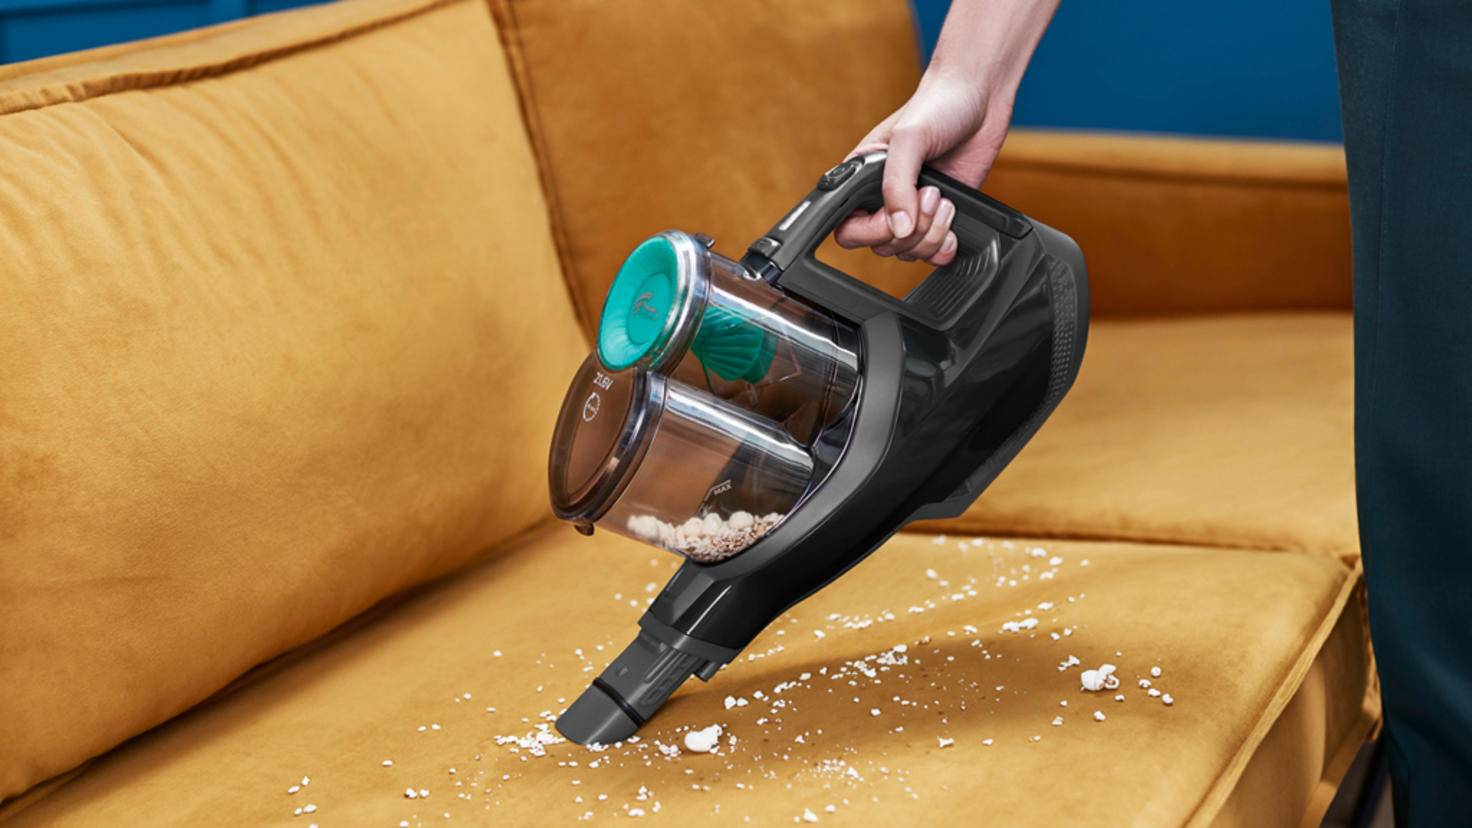 The SpeedPro comes with a handle to the hand vacuum.